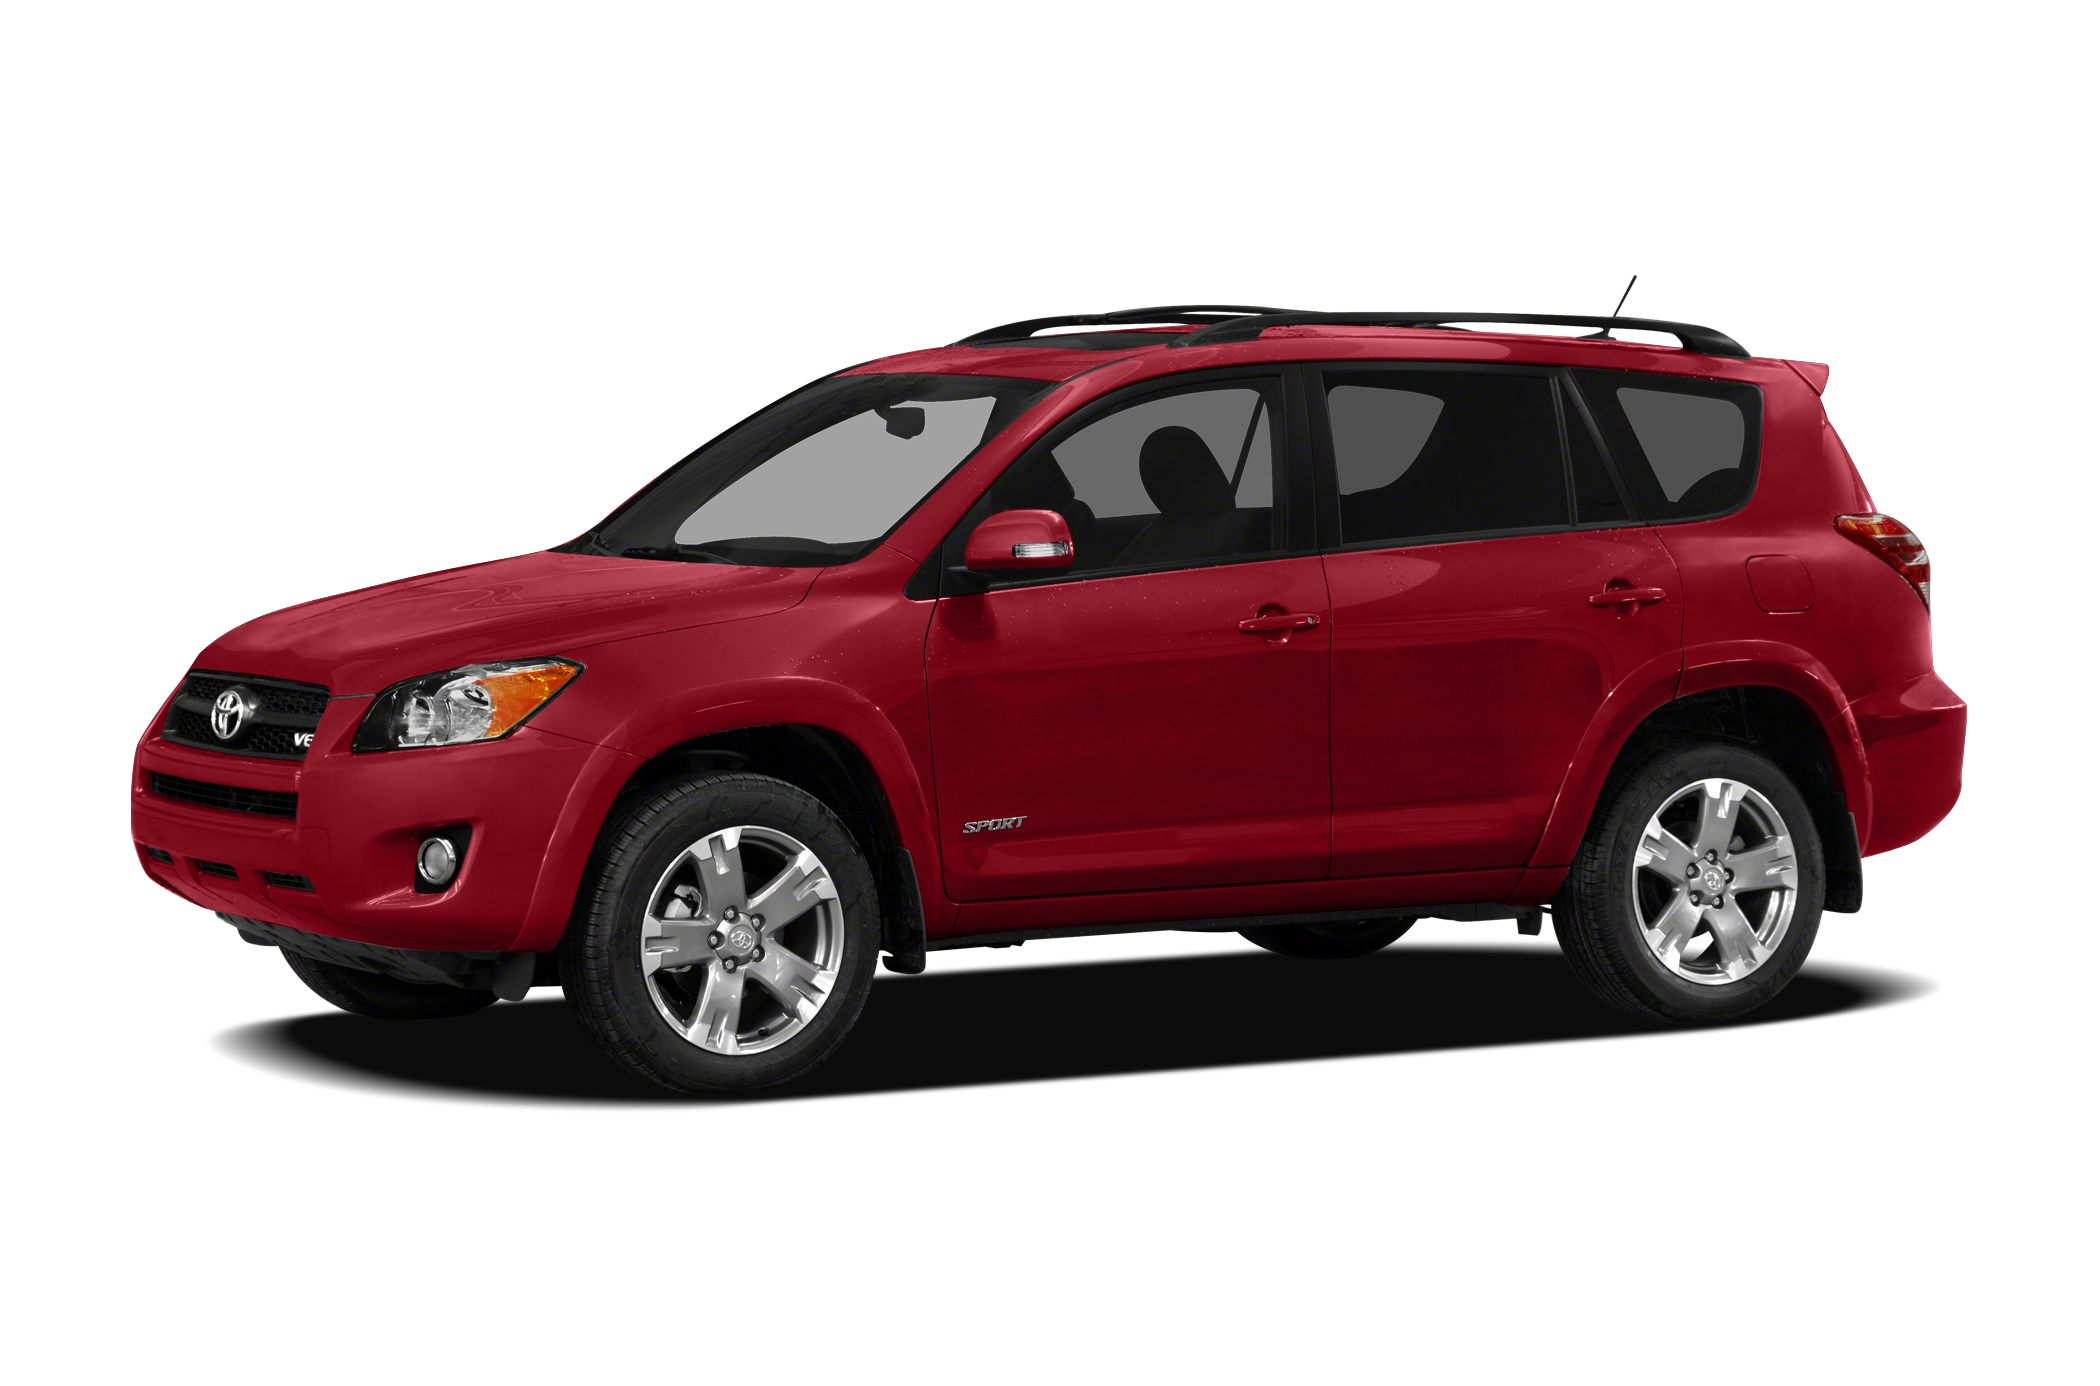 2012 Toyota RAV4 Limited SUV for sale in Joplin for $22,997 with 24,223 miles.